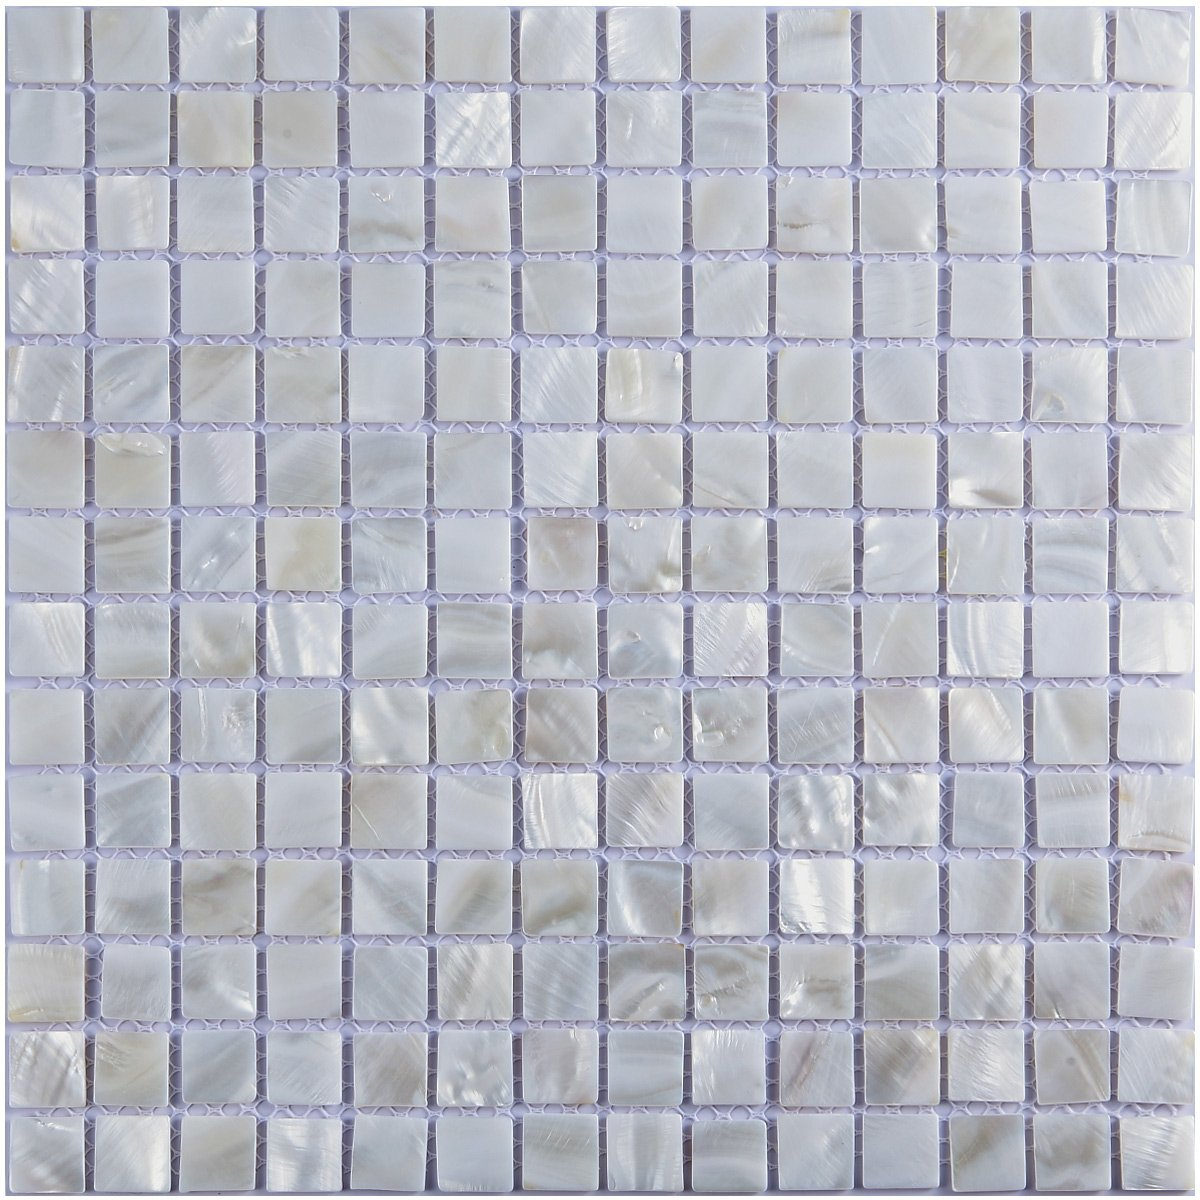 """Art3d Oyster Mother of Pearl Square Shell Mosaic Tile for Kitchen Backsplashes, Bathroom Walls, Spas, Pools 12"""" X 12"""" Pack of 6"""